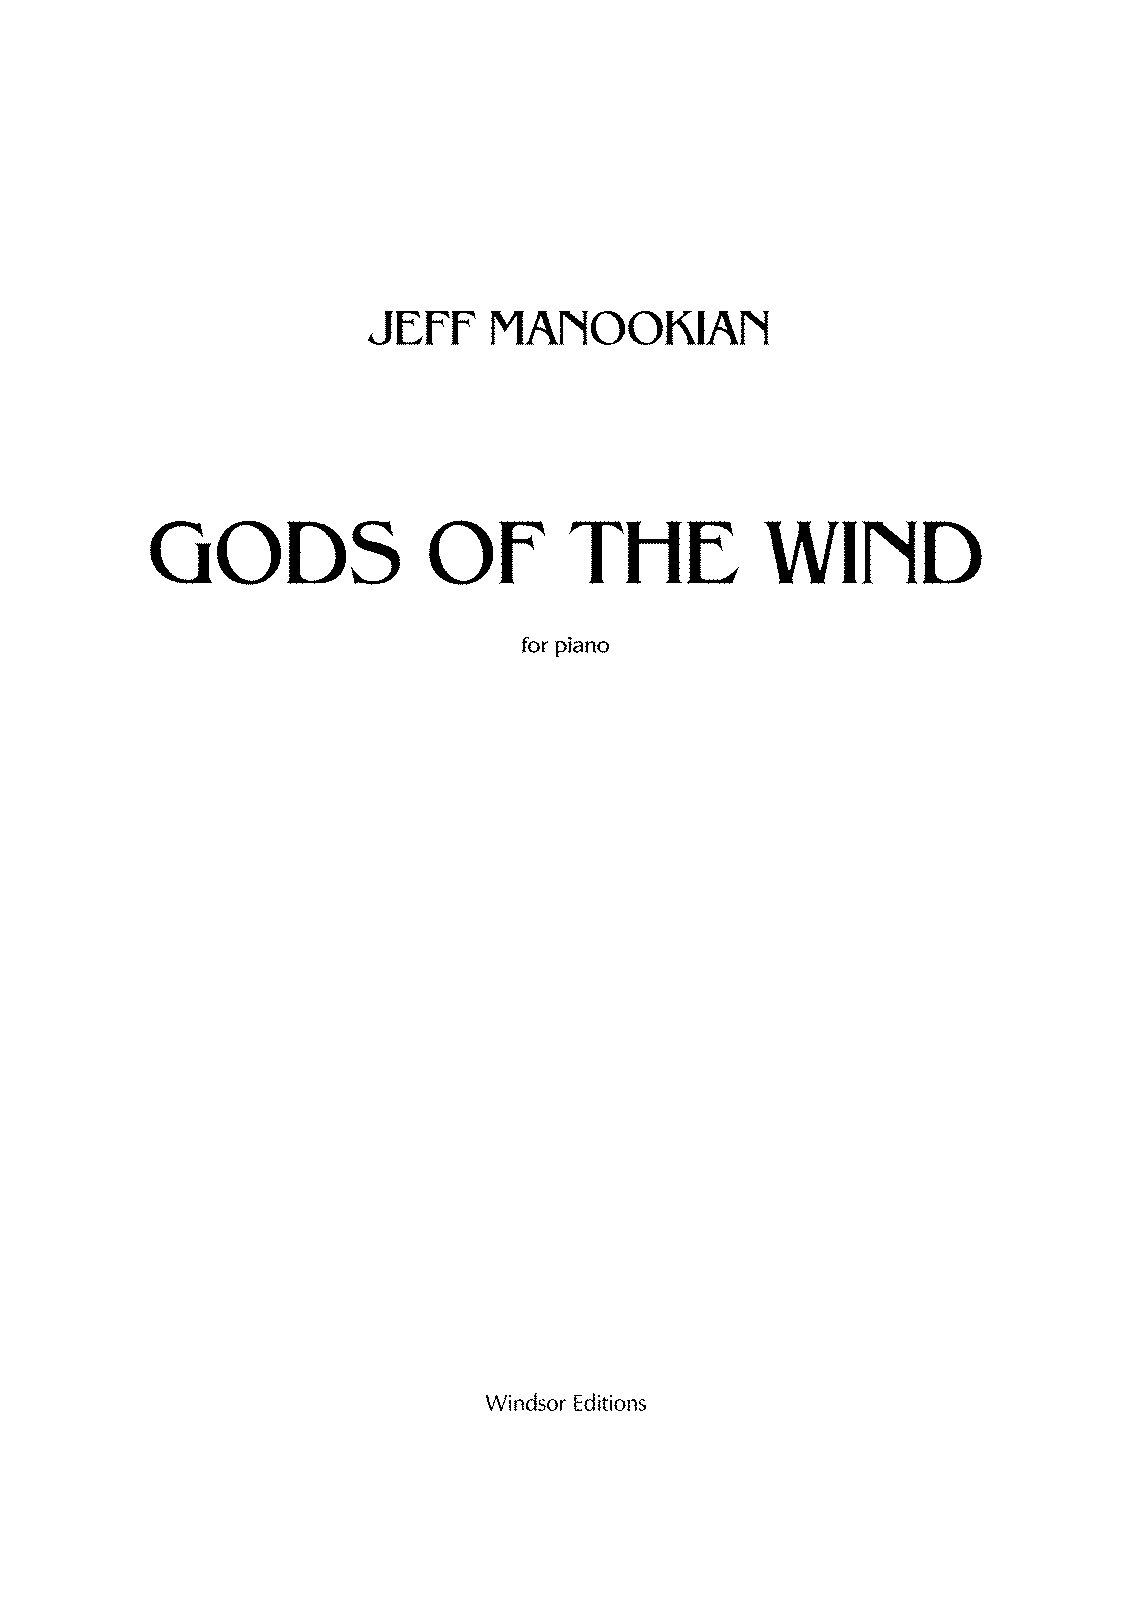 PMLP118350-Finale 2007 - -GODS OF THE WIND - part 1-.pdf